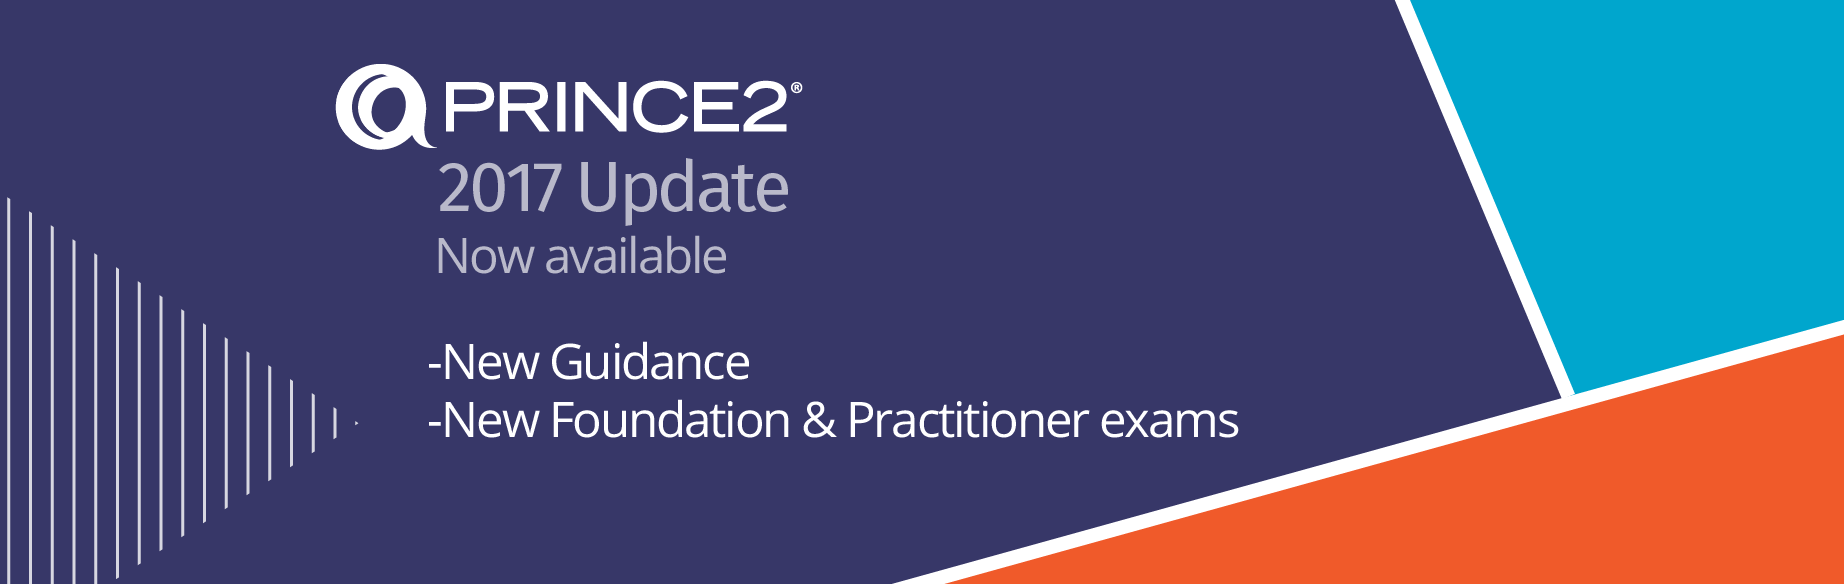 prince2-update-landing-page-banner